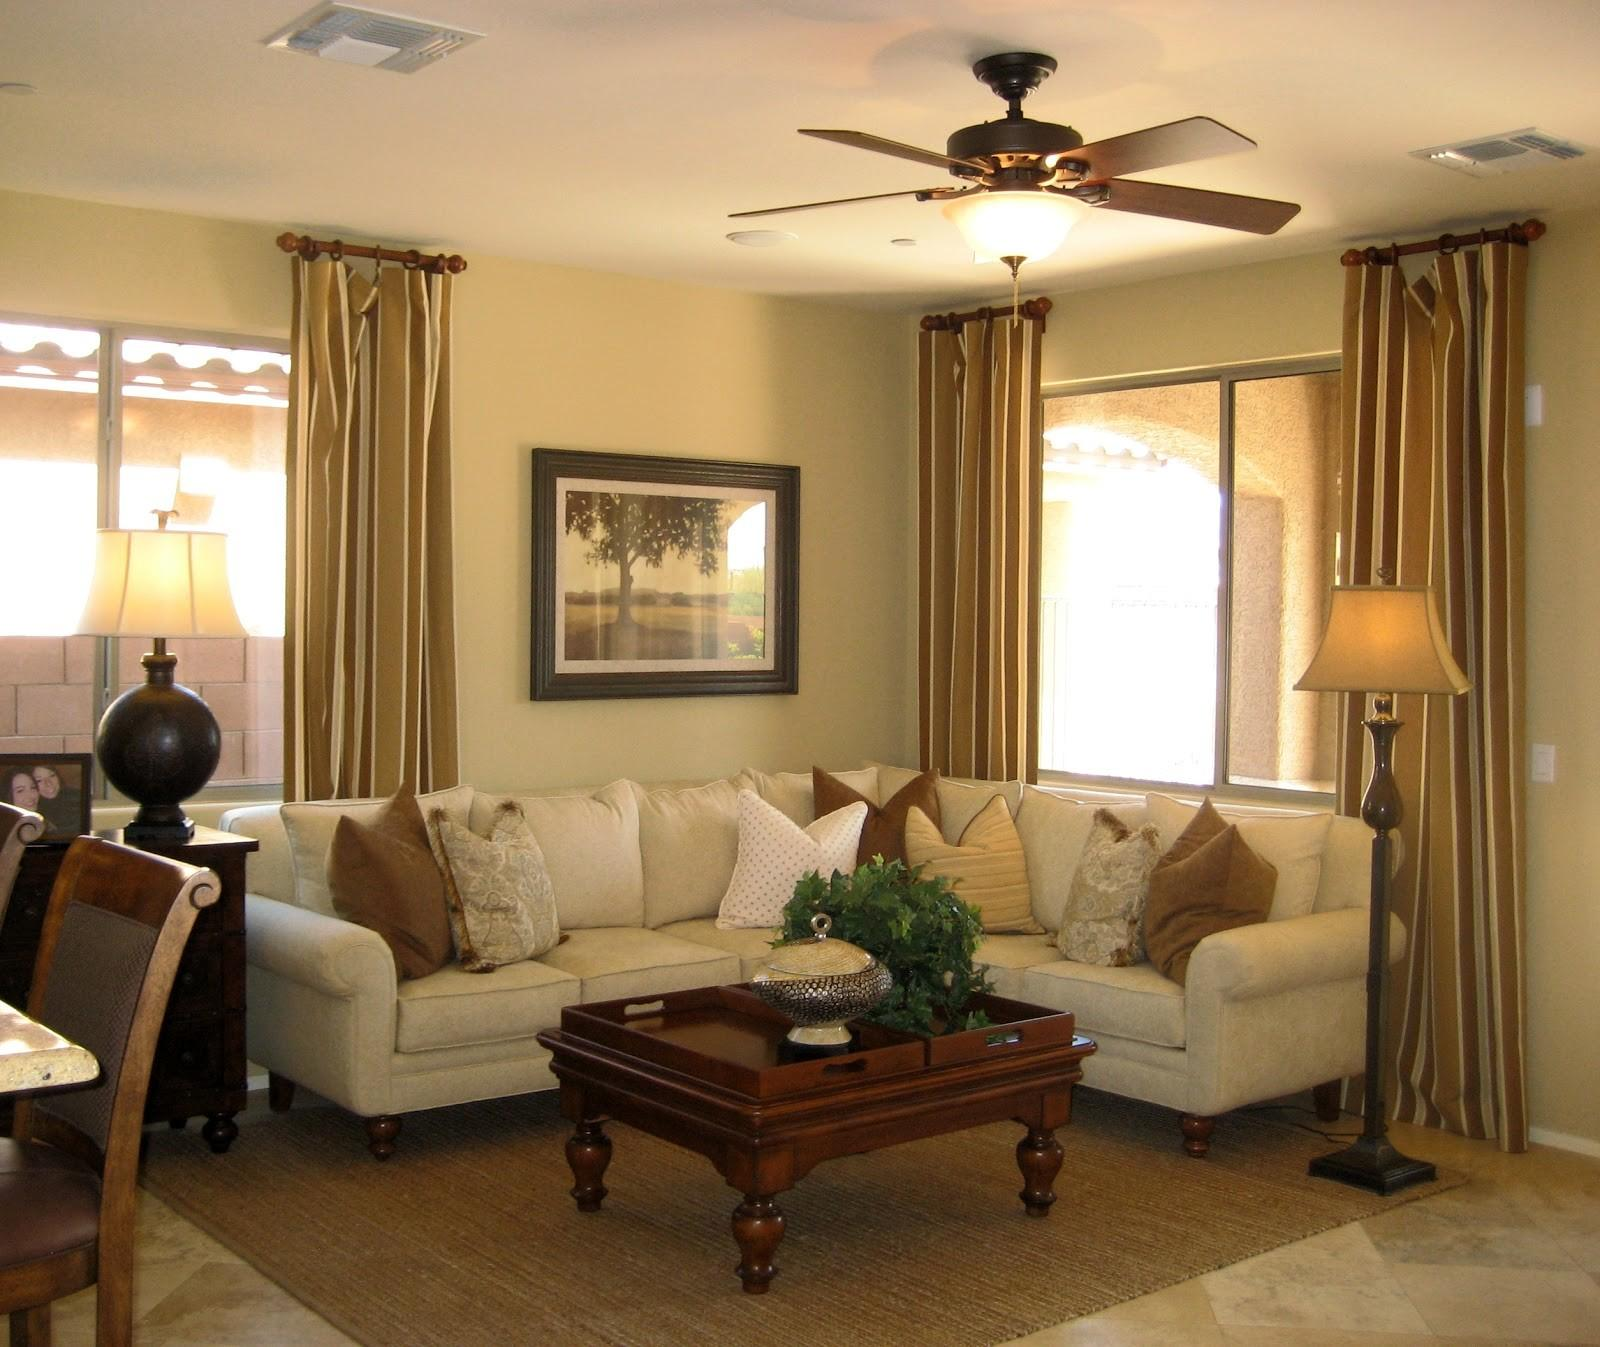 House Decorating Software Home Decor Spanish Style Ideas